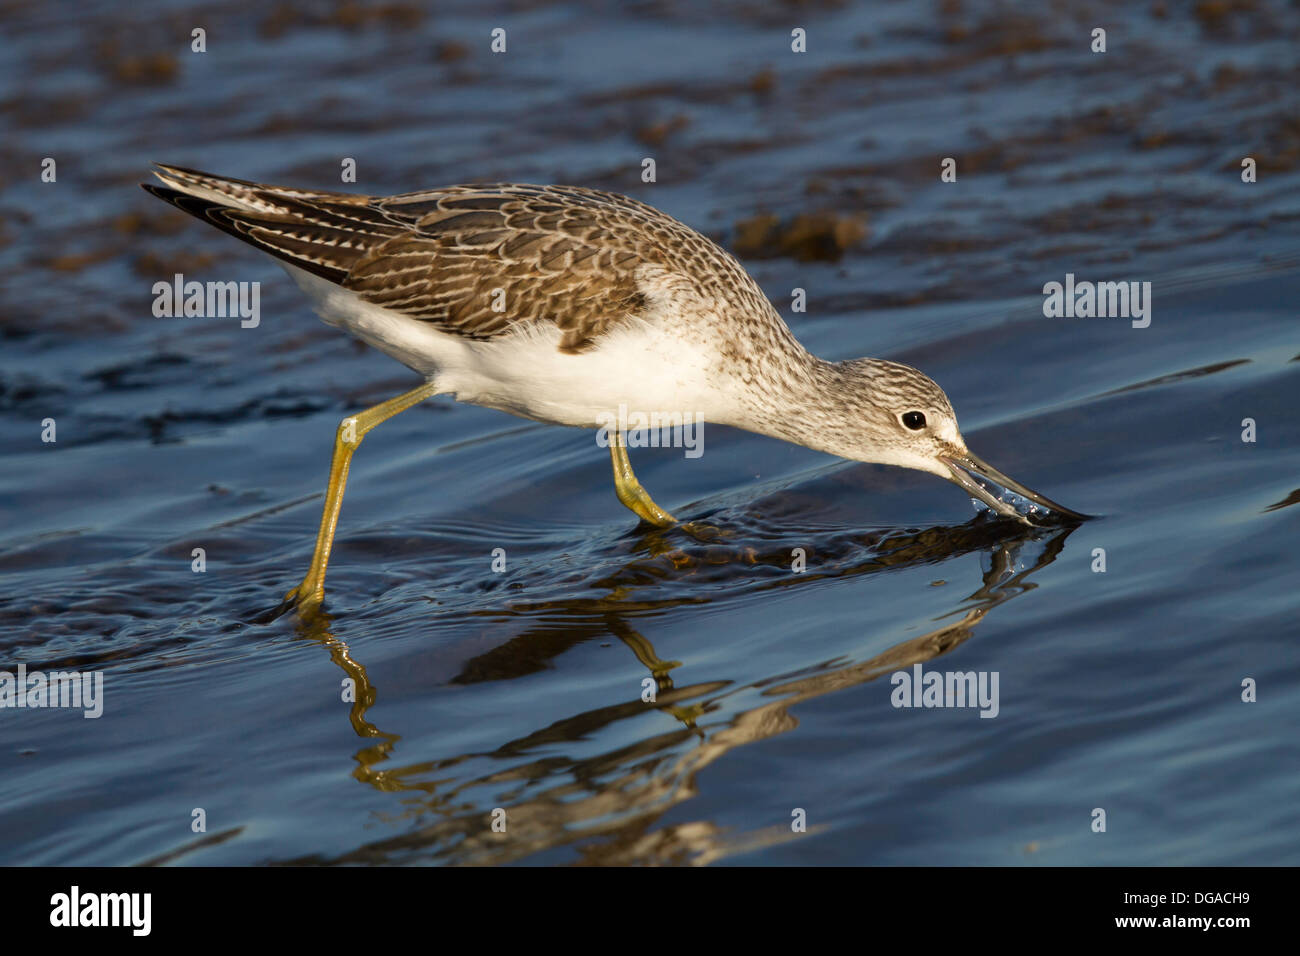 Greenshank (Tringa nebularia) actively feeding in shallow water - Stock Image